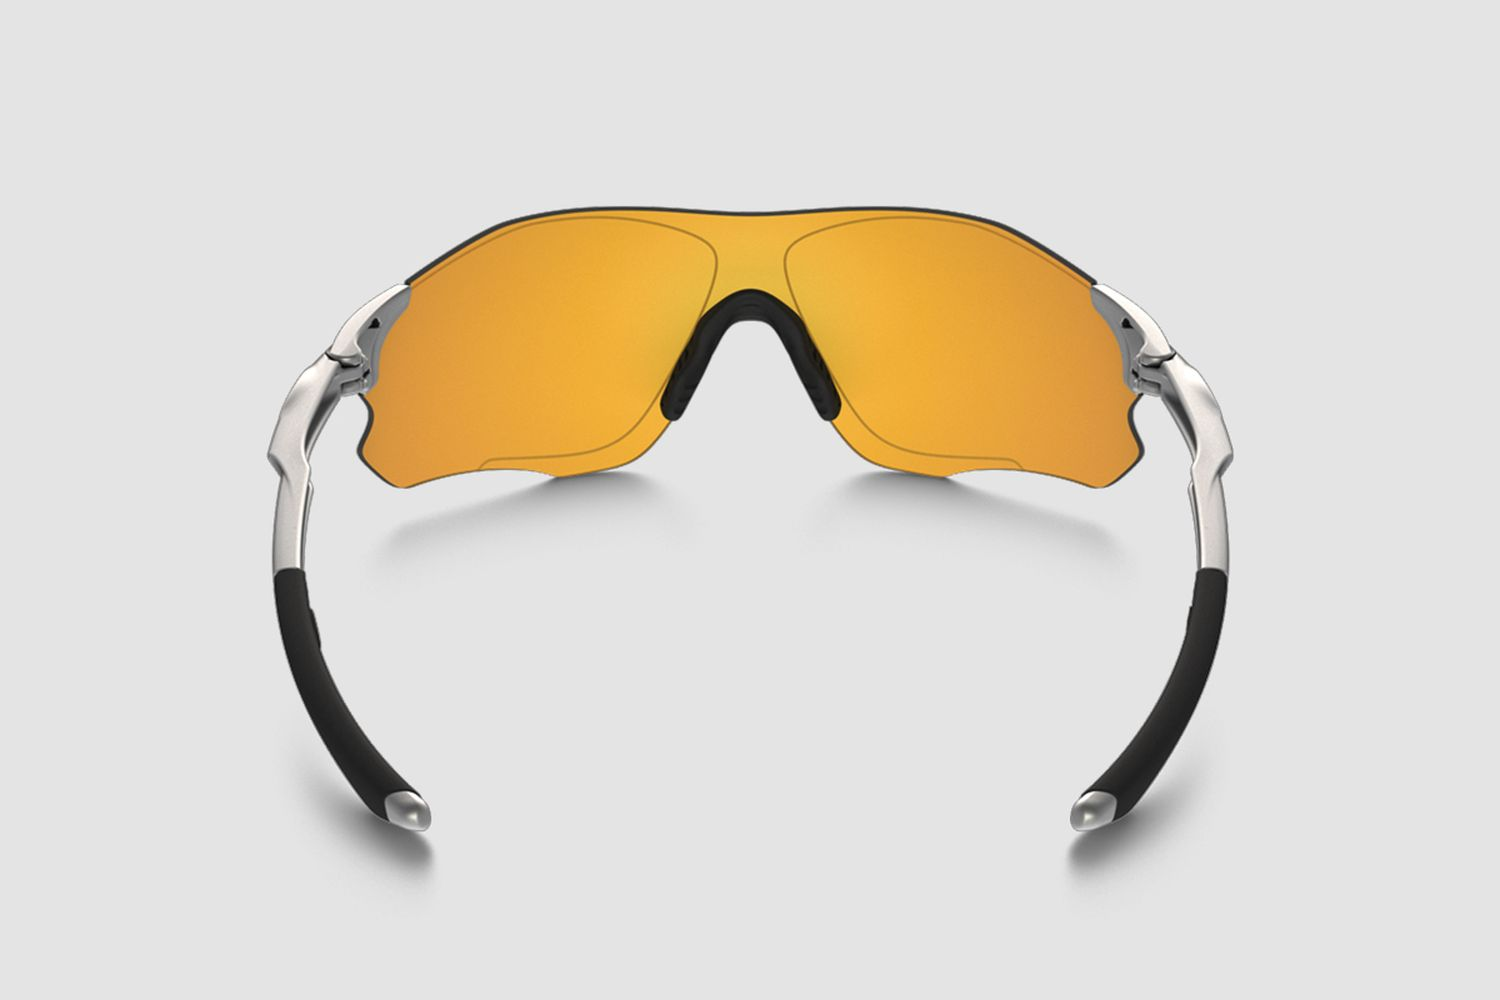 EV Zero Sunglasses